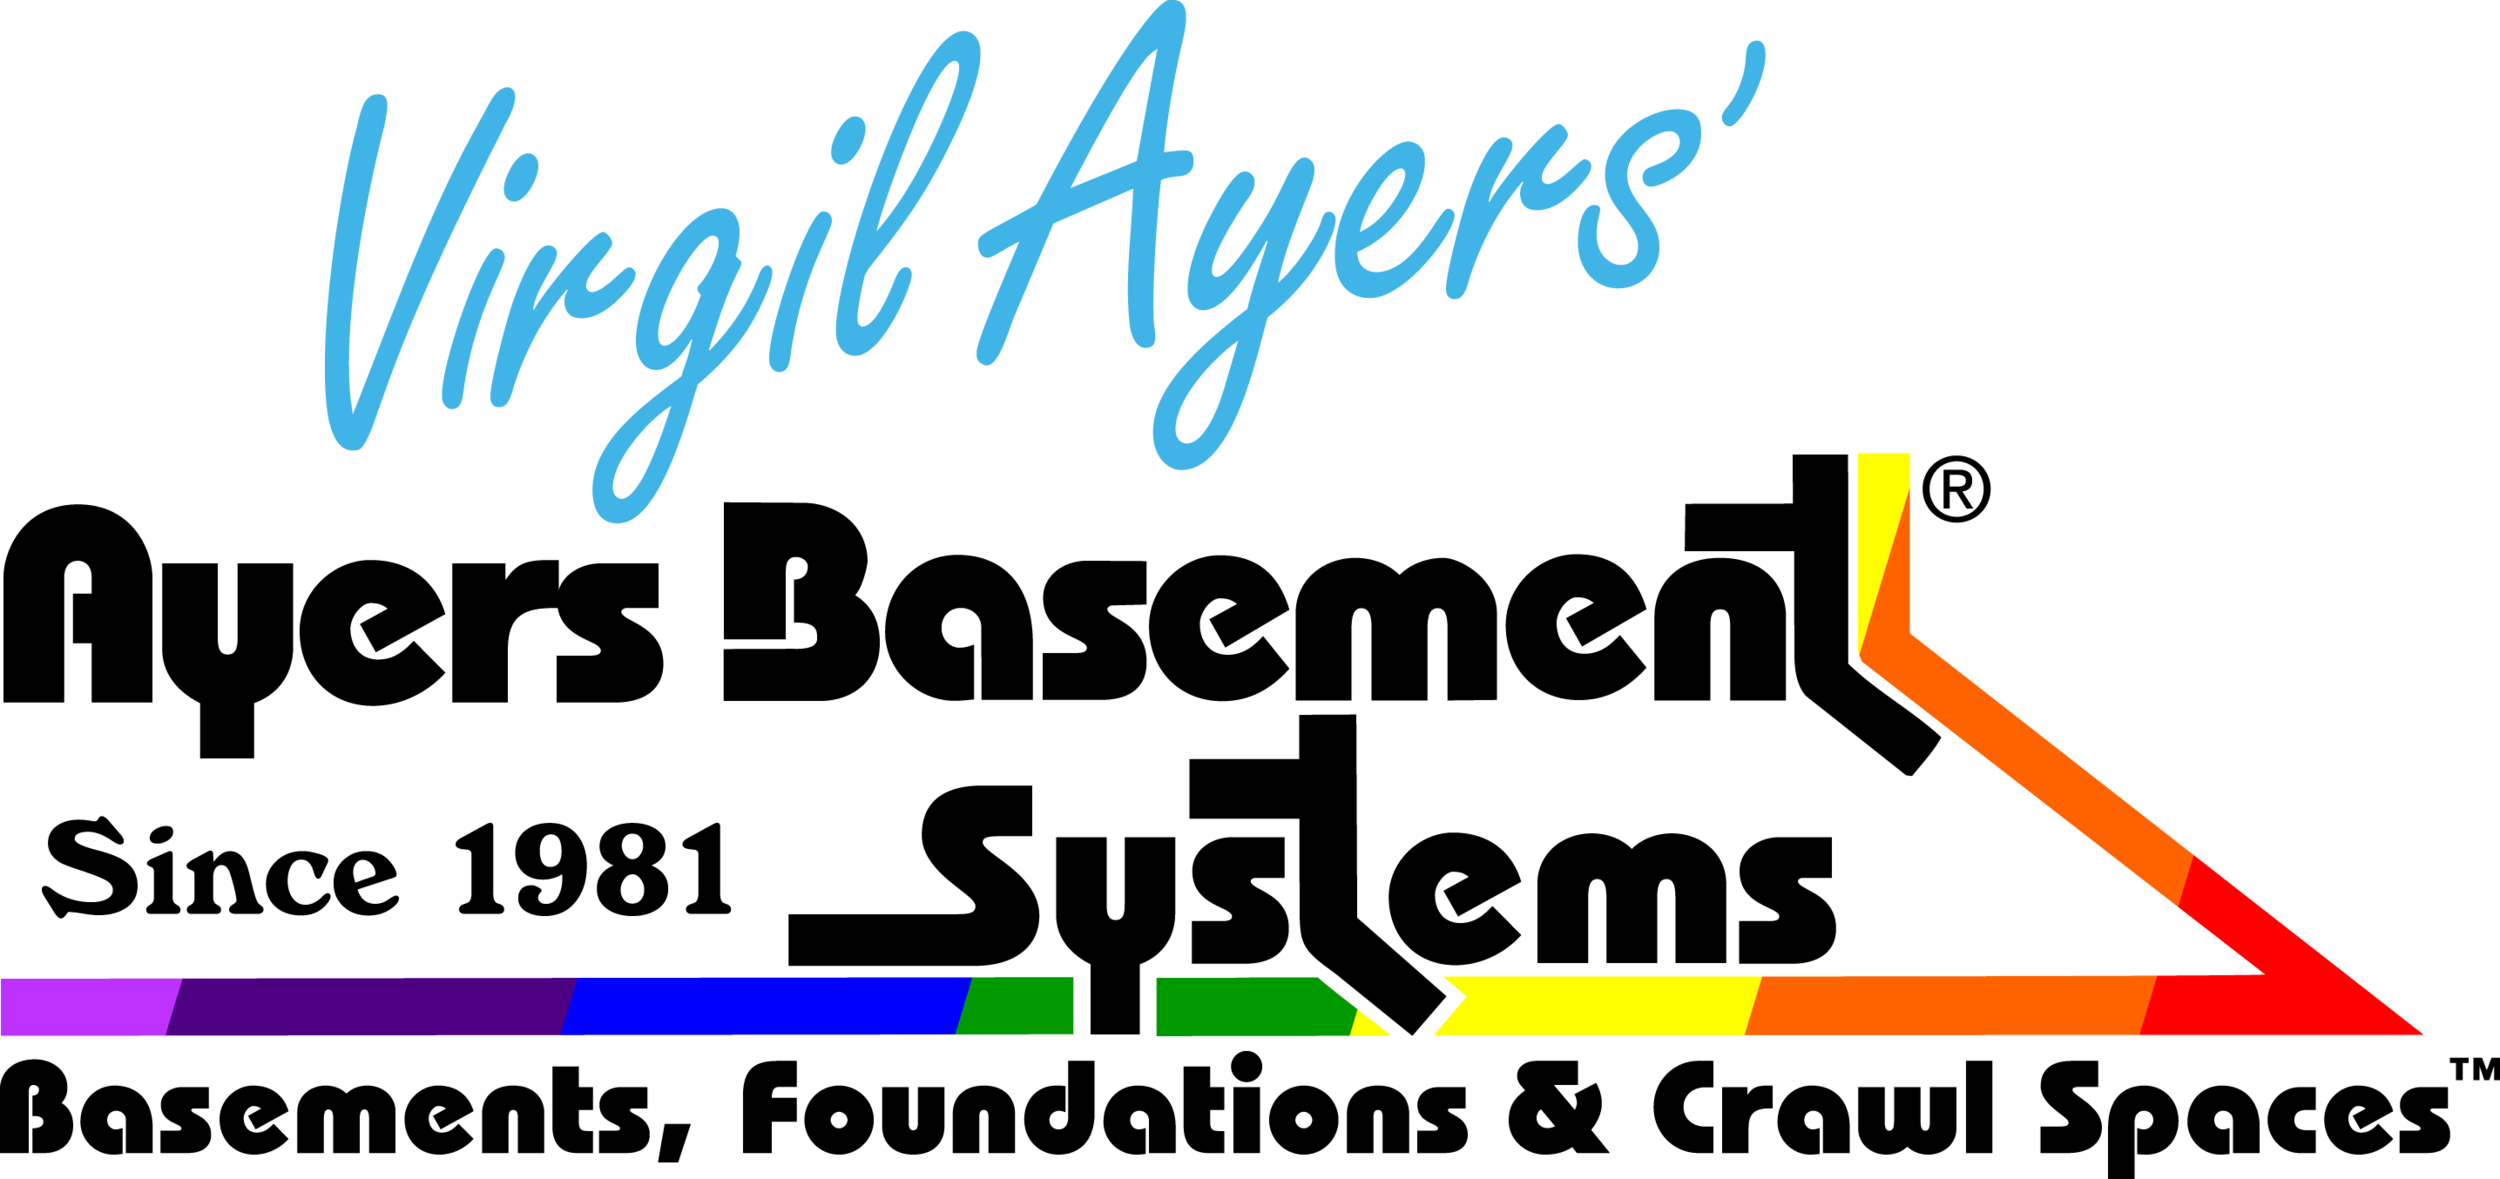 AyersPRIDE---Full-Color-BFCS.png